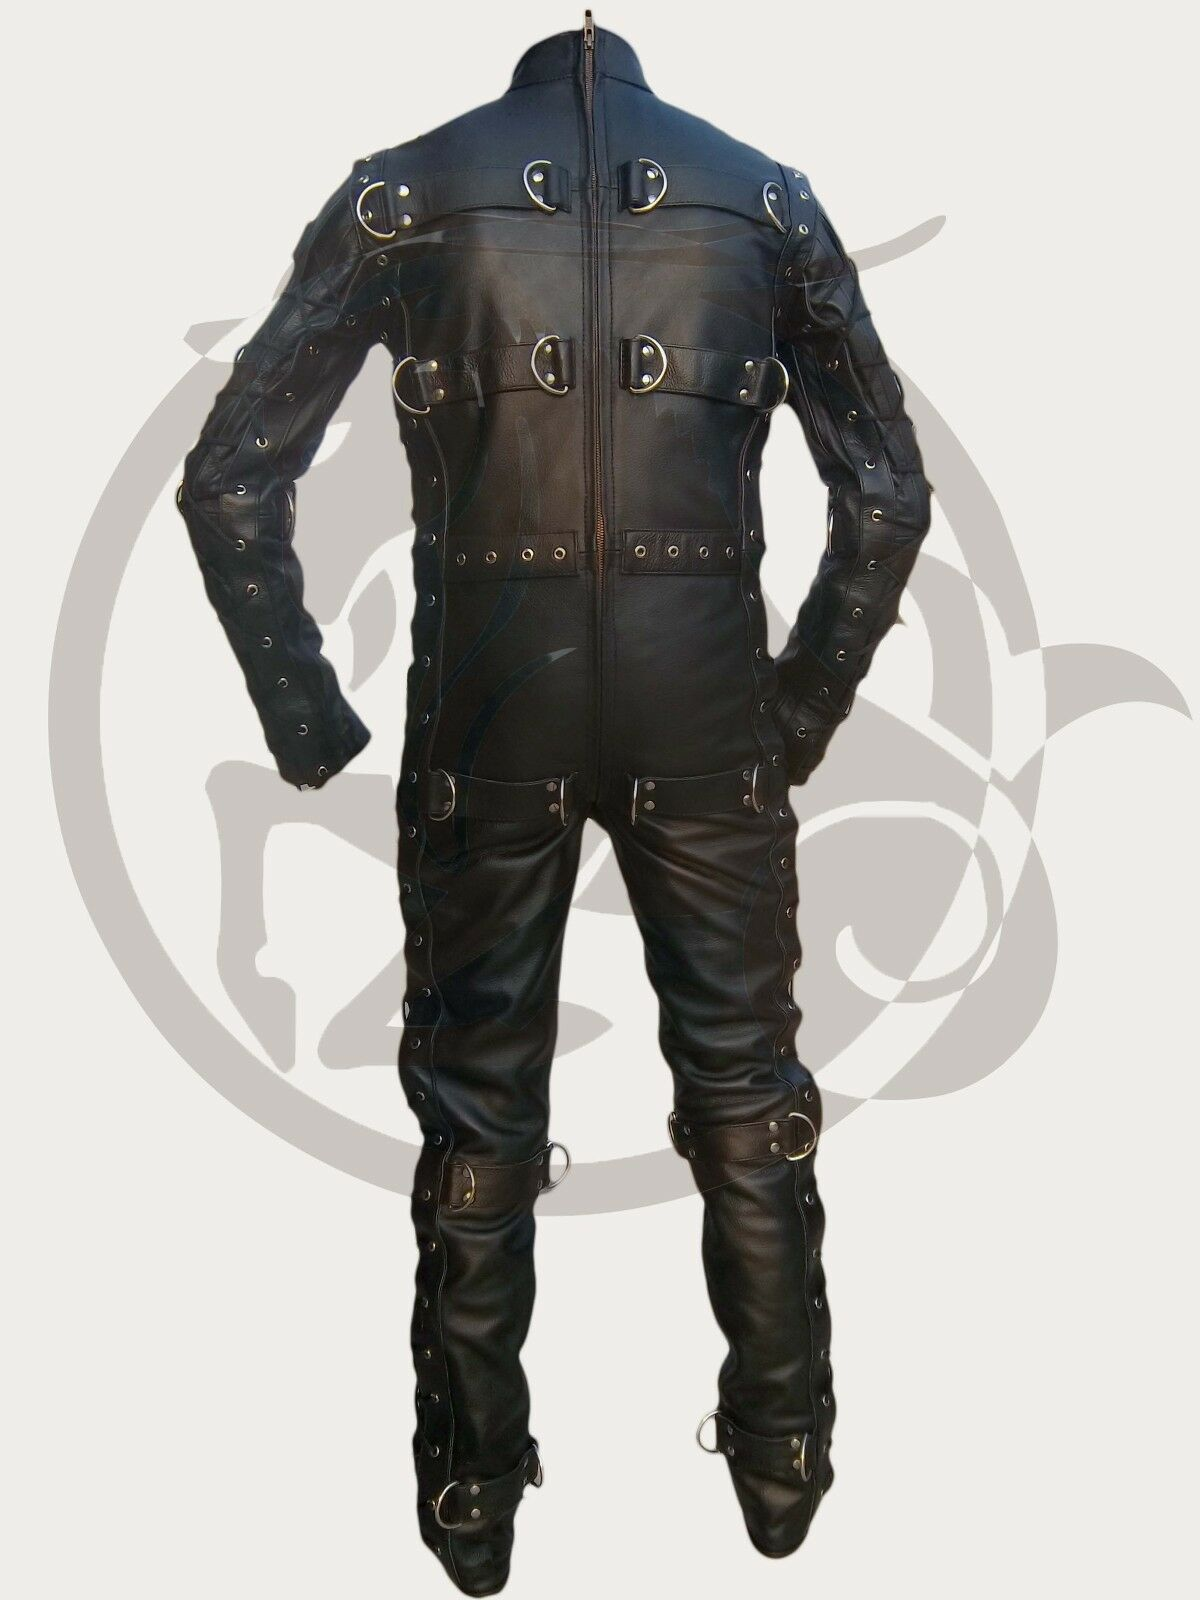 Cow Leather Bondage Suit Jumpsuit Catsuit Lacing and Welded D rings Bespoke